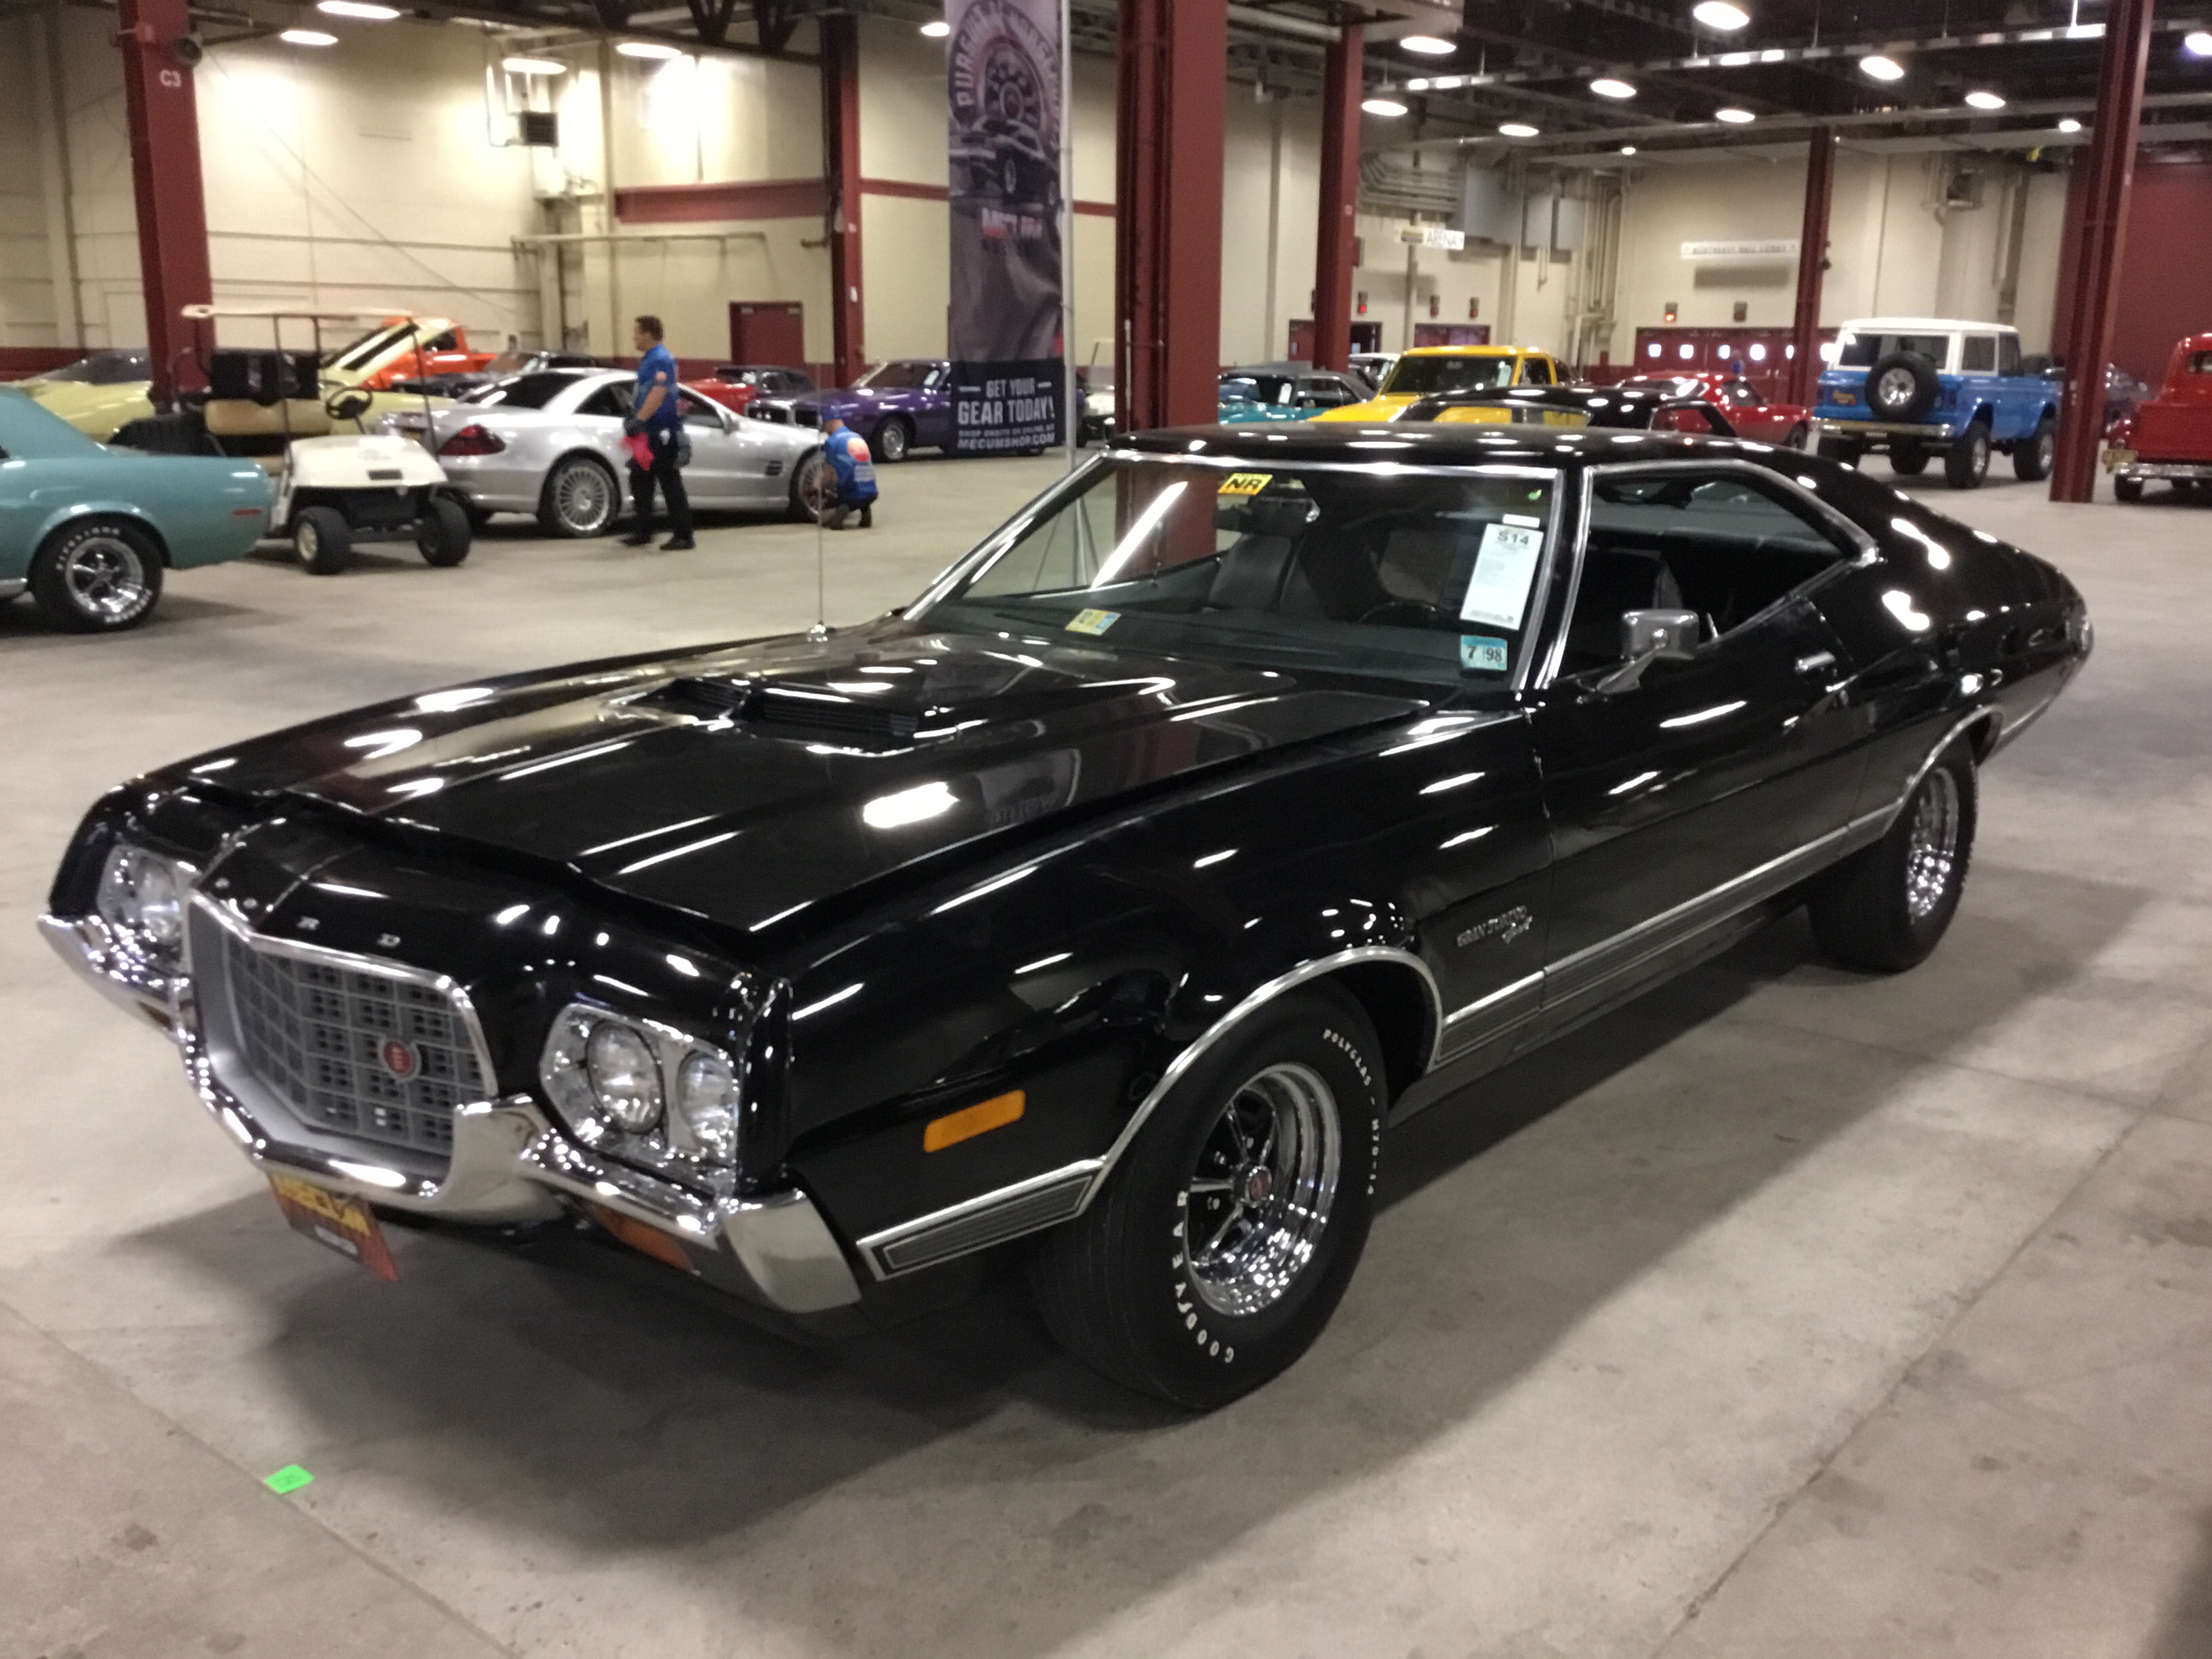 1973 Ford Gran Torino Values | Hagerty Valuation Tool®